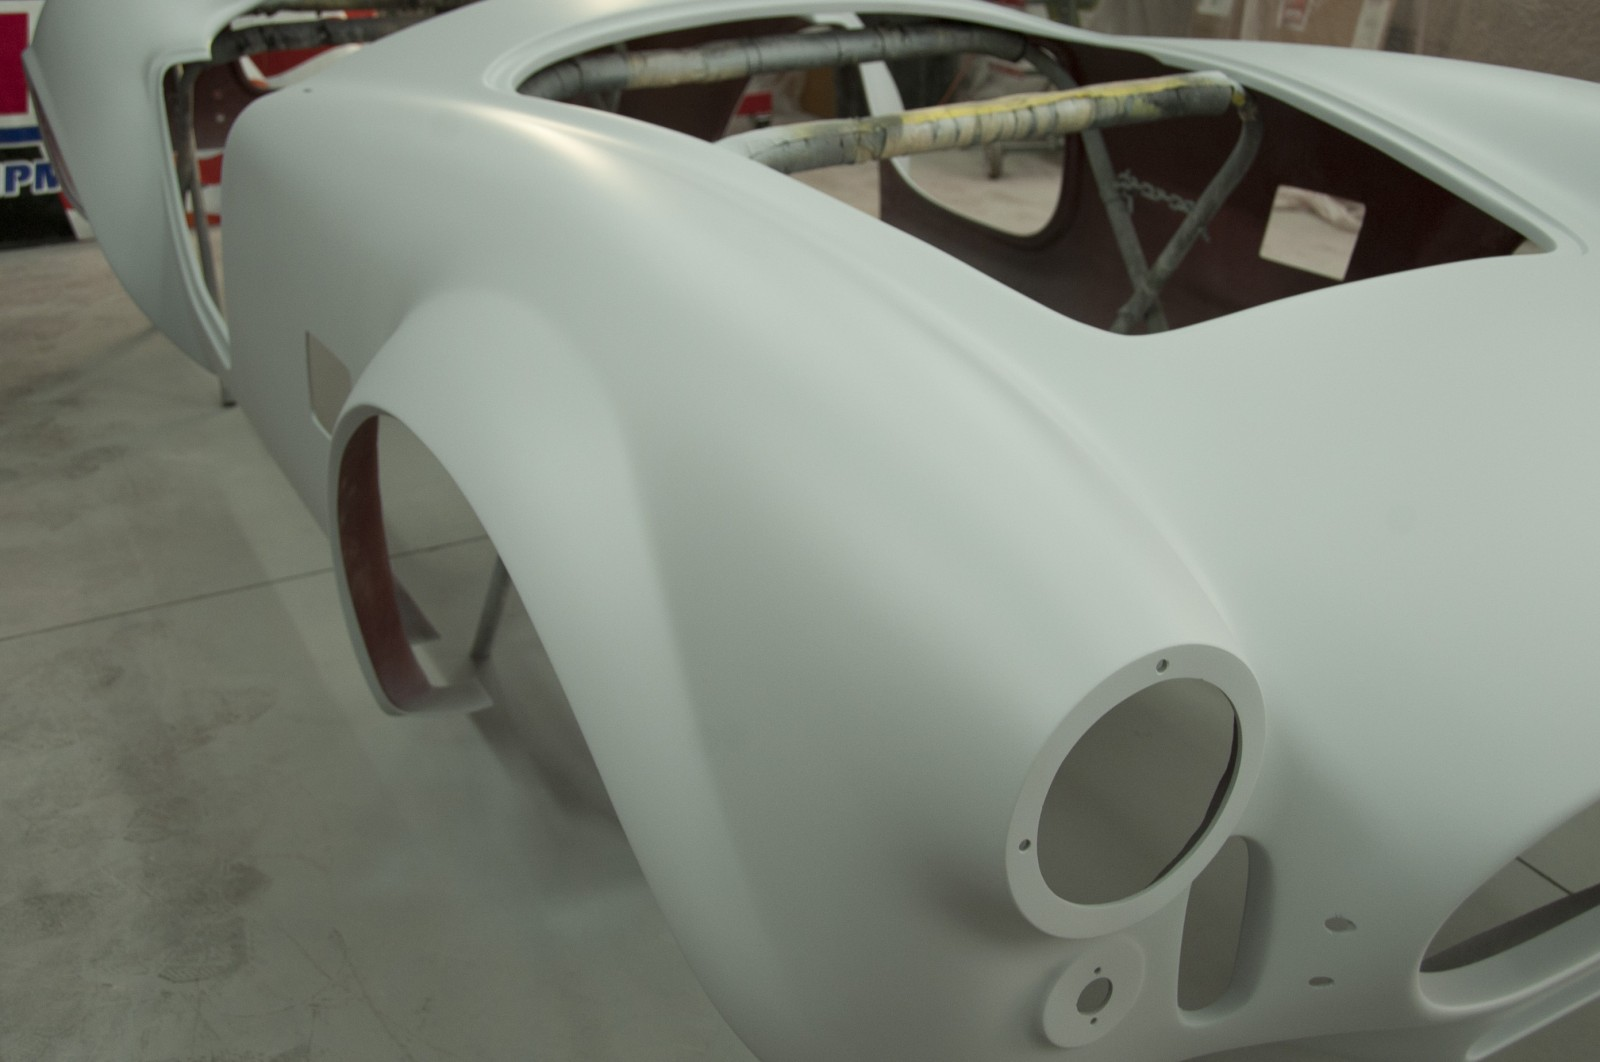 Factory Five/Summit Racing Mk4 Build (Part 4): Body Prep and